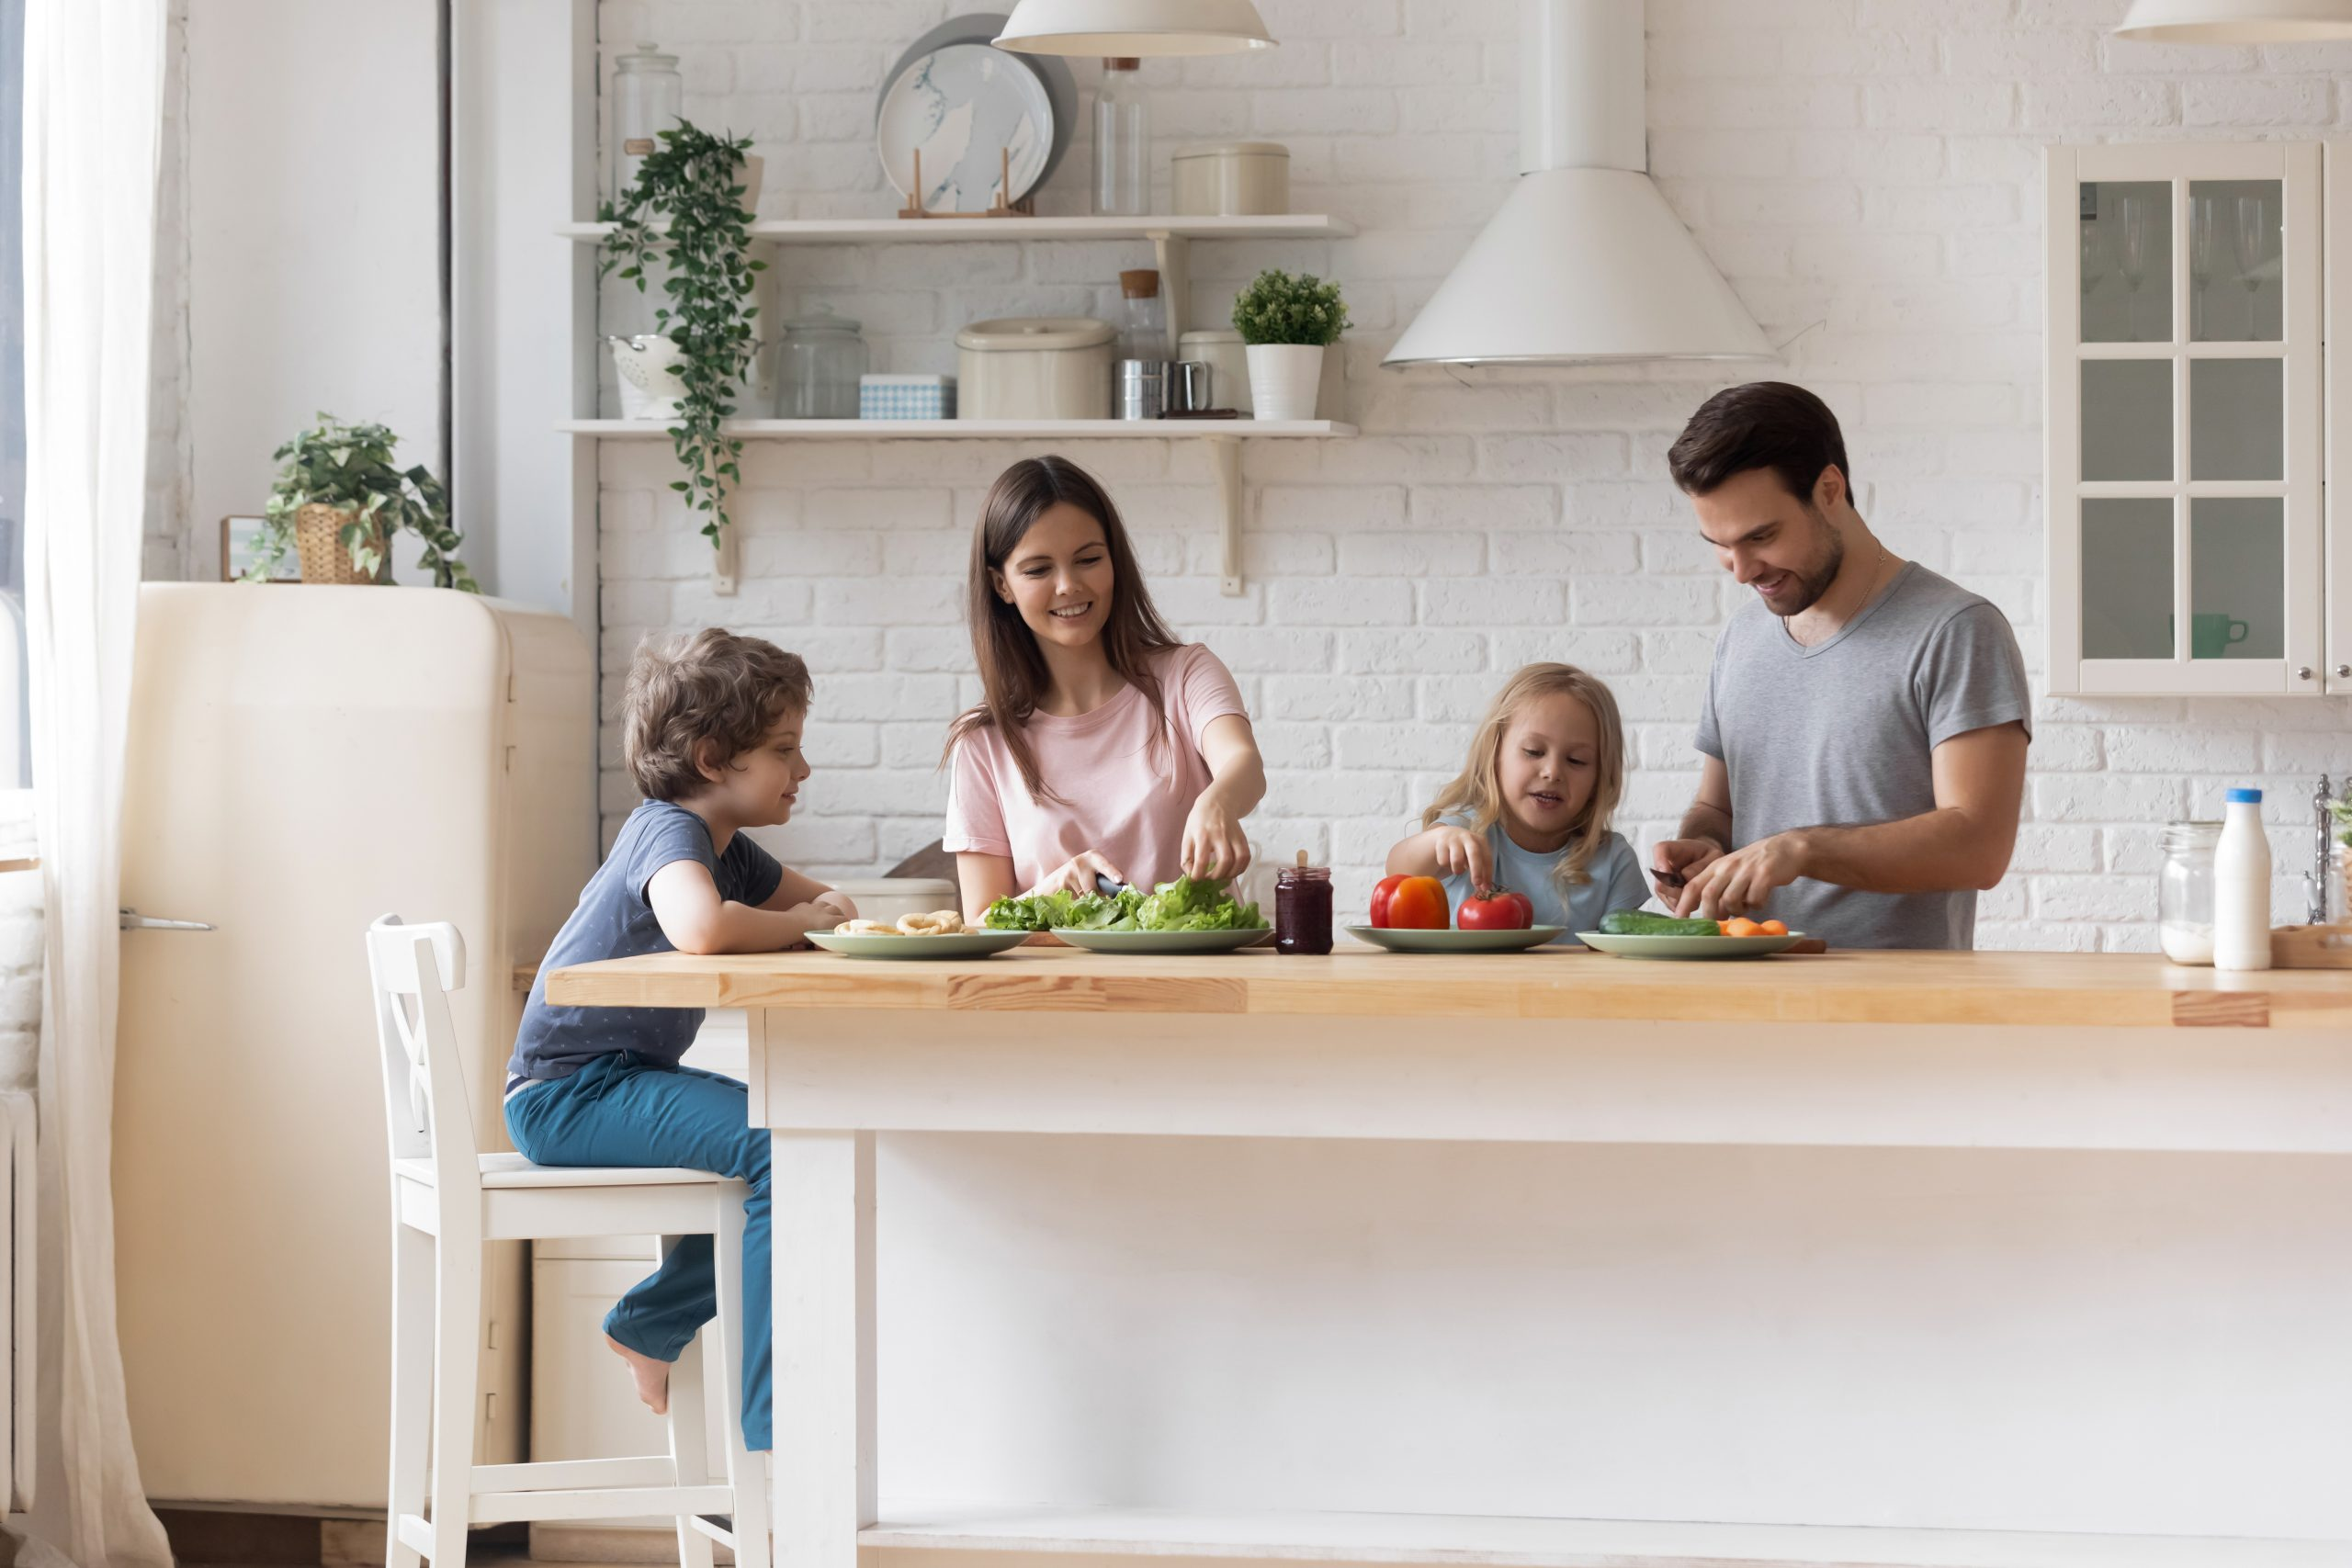 Happy parents with little children preparing salad for dinner together, standing at table at home, talking, smiling mother and father cutting vegetables in modern kitchen, family enjoying weekend